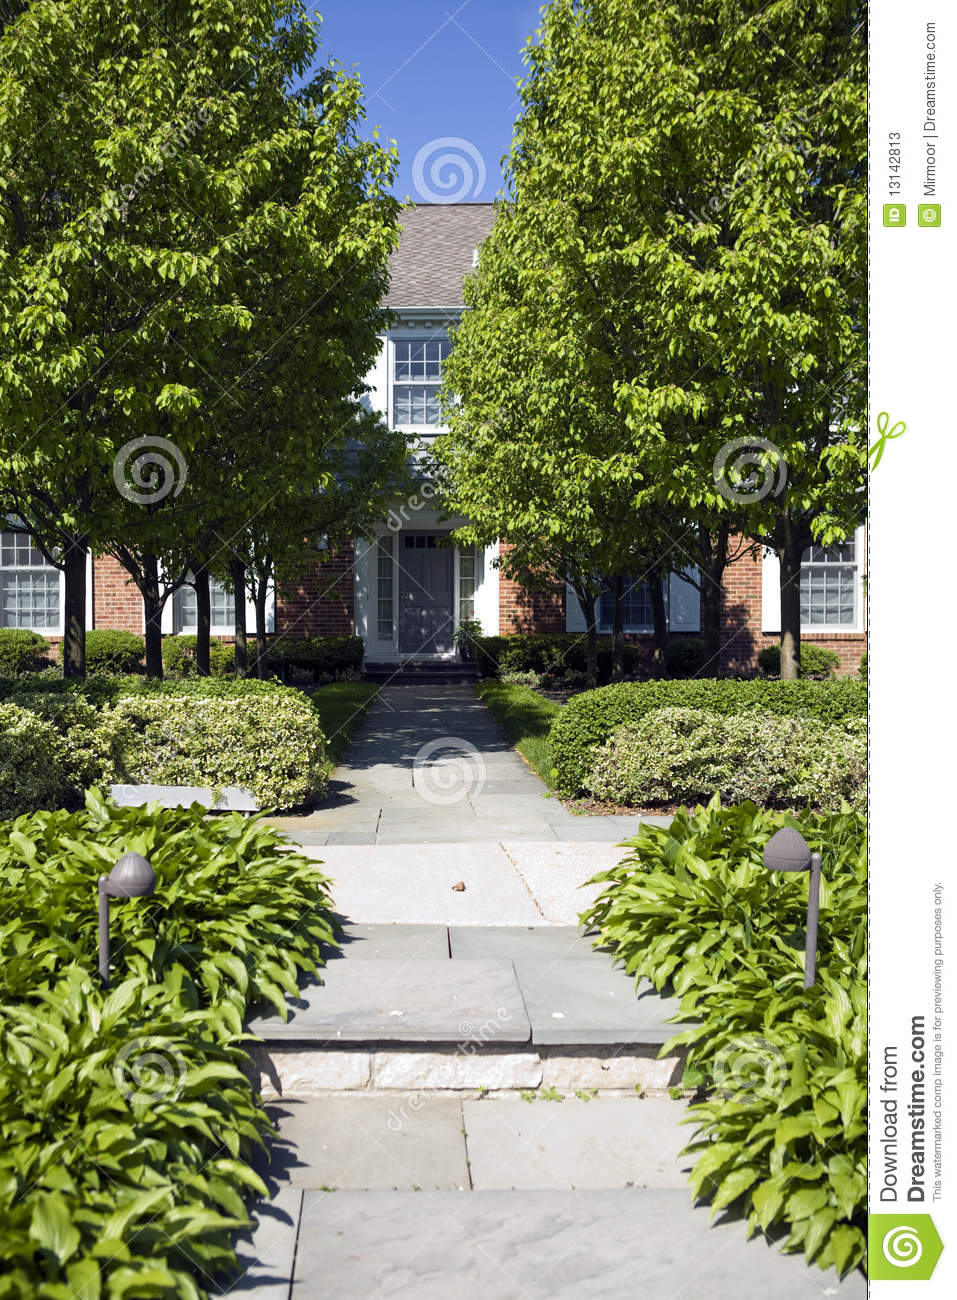 American Home And Garden Stock Photos Image 13142813